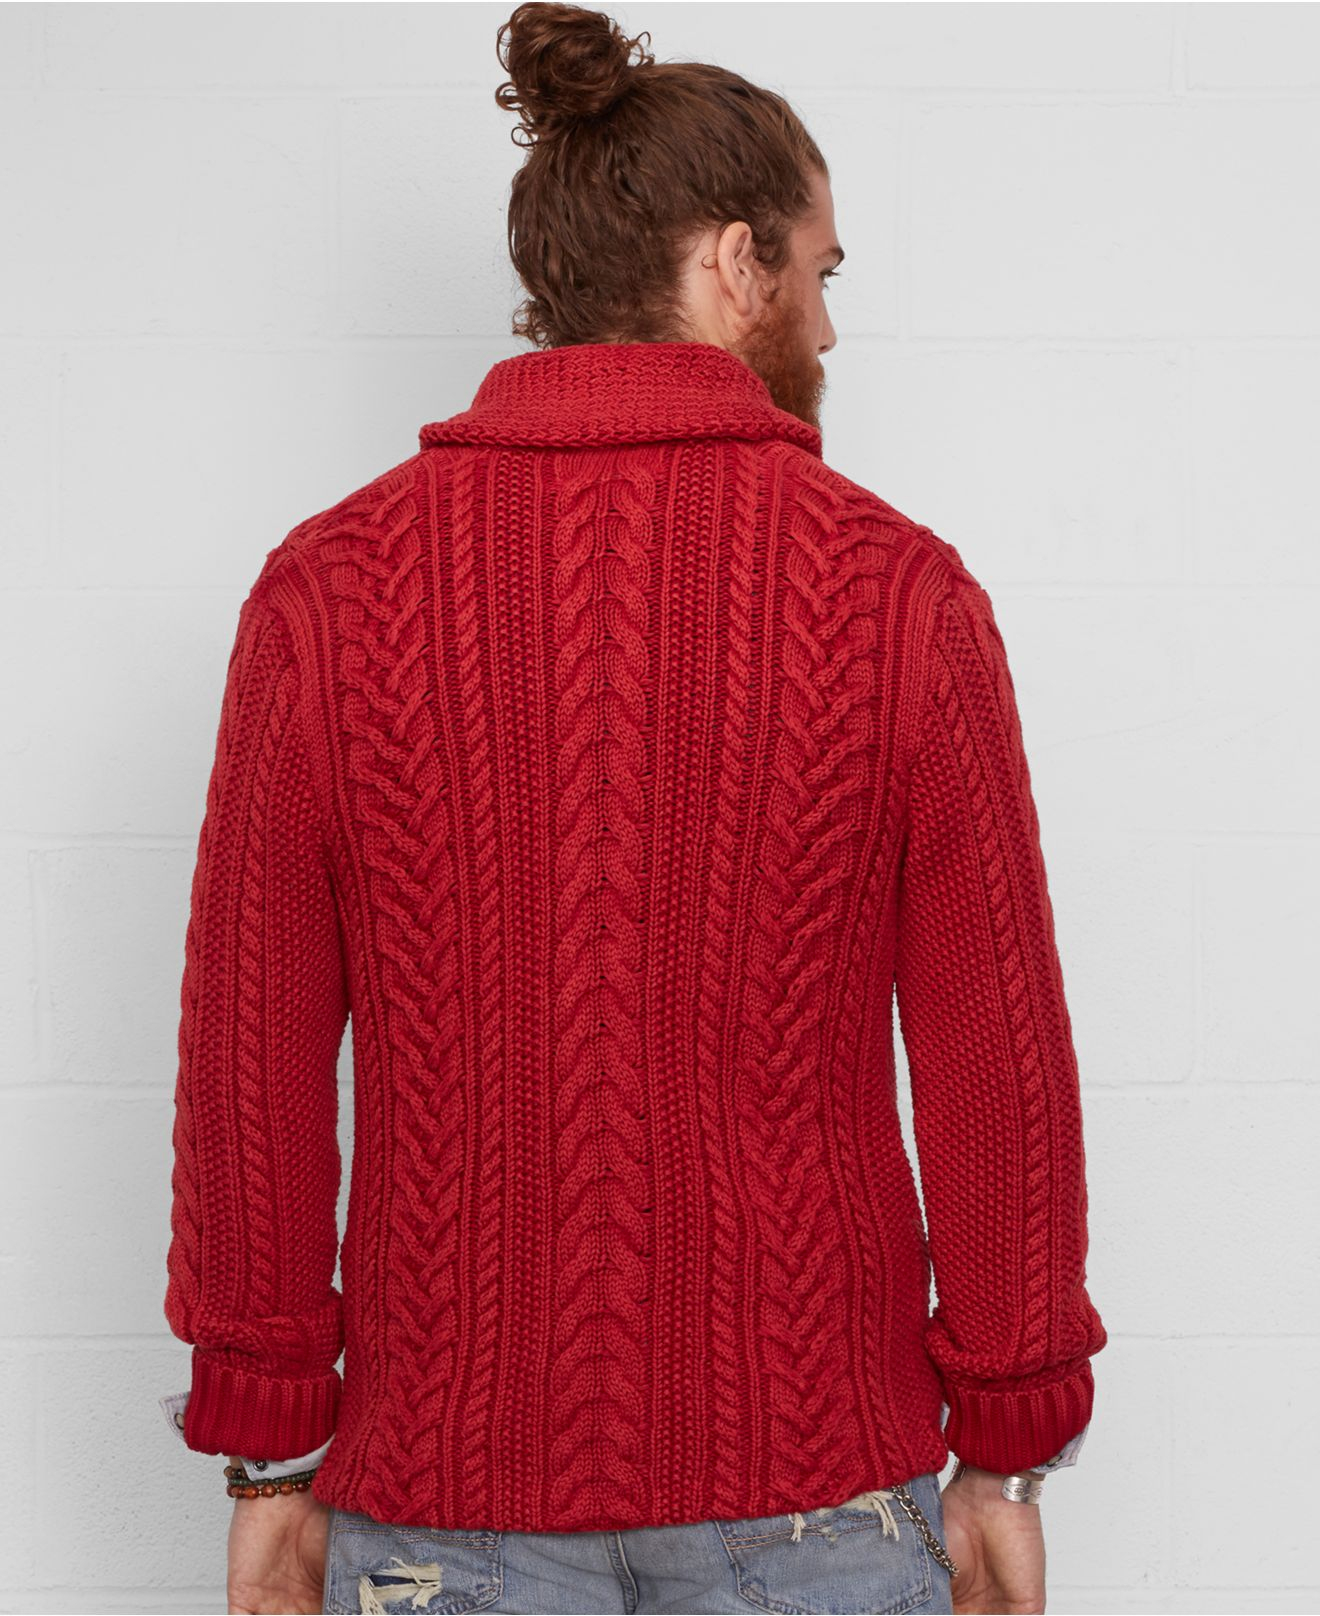 Denim & supply ralph lauren Cable Knit Shawl Cardigan in Red for ...